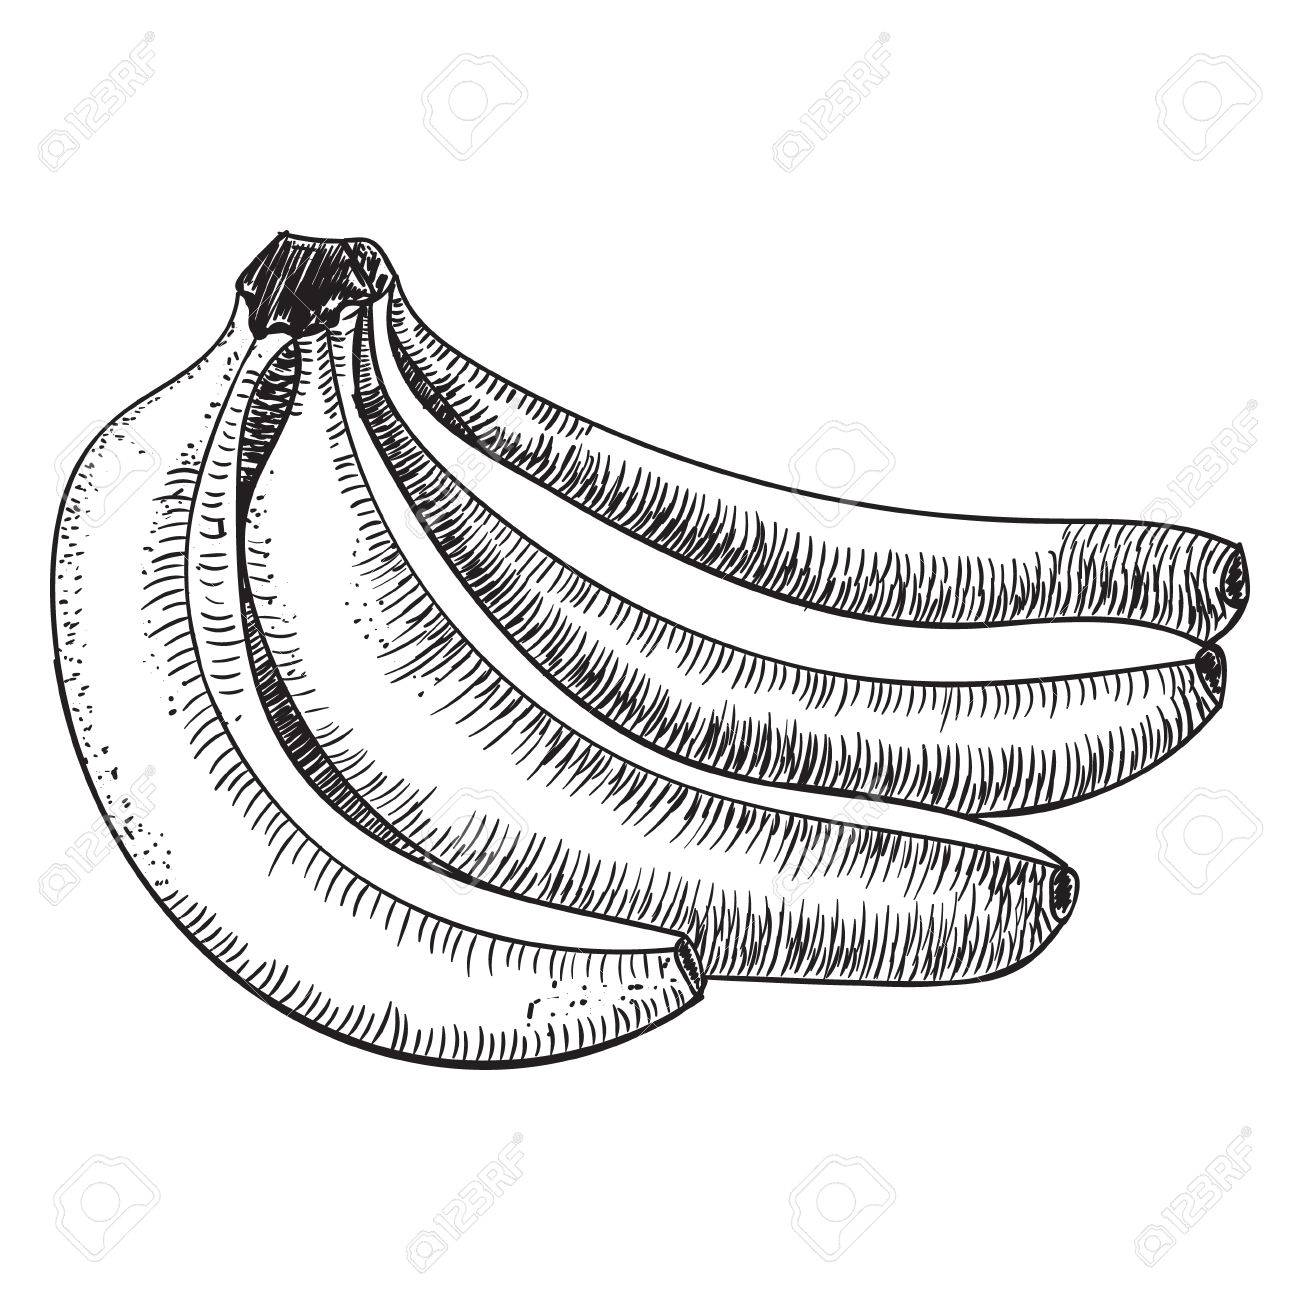 Bananas Of SketchesDetailed Citrus DrawingVintage Sketch Style Illustration Stock Vector